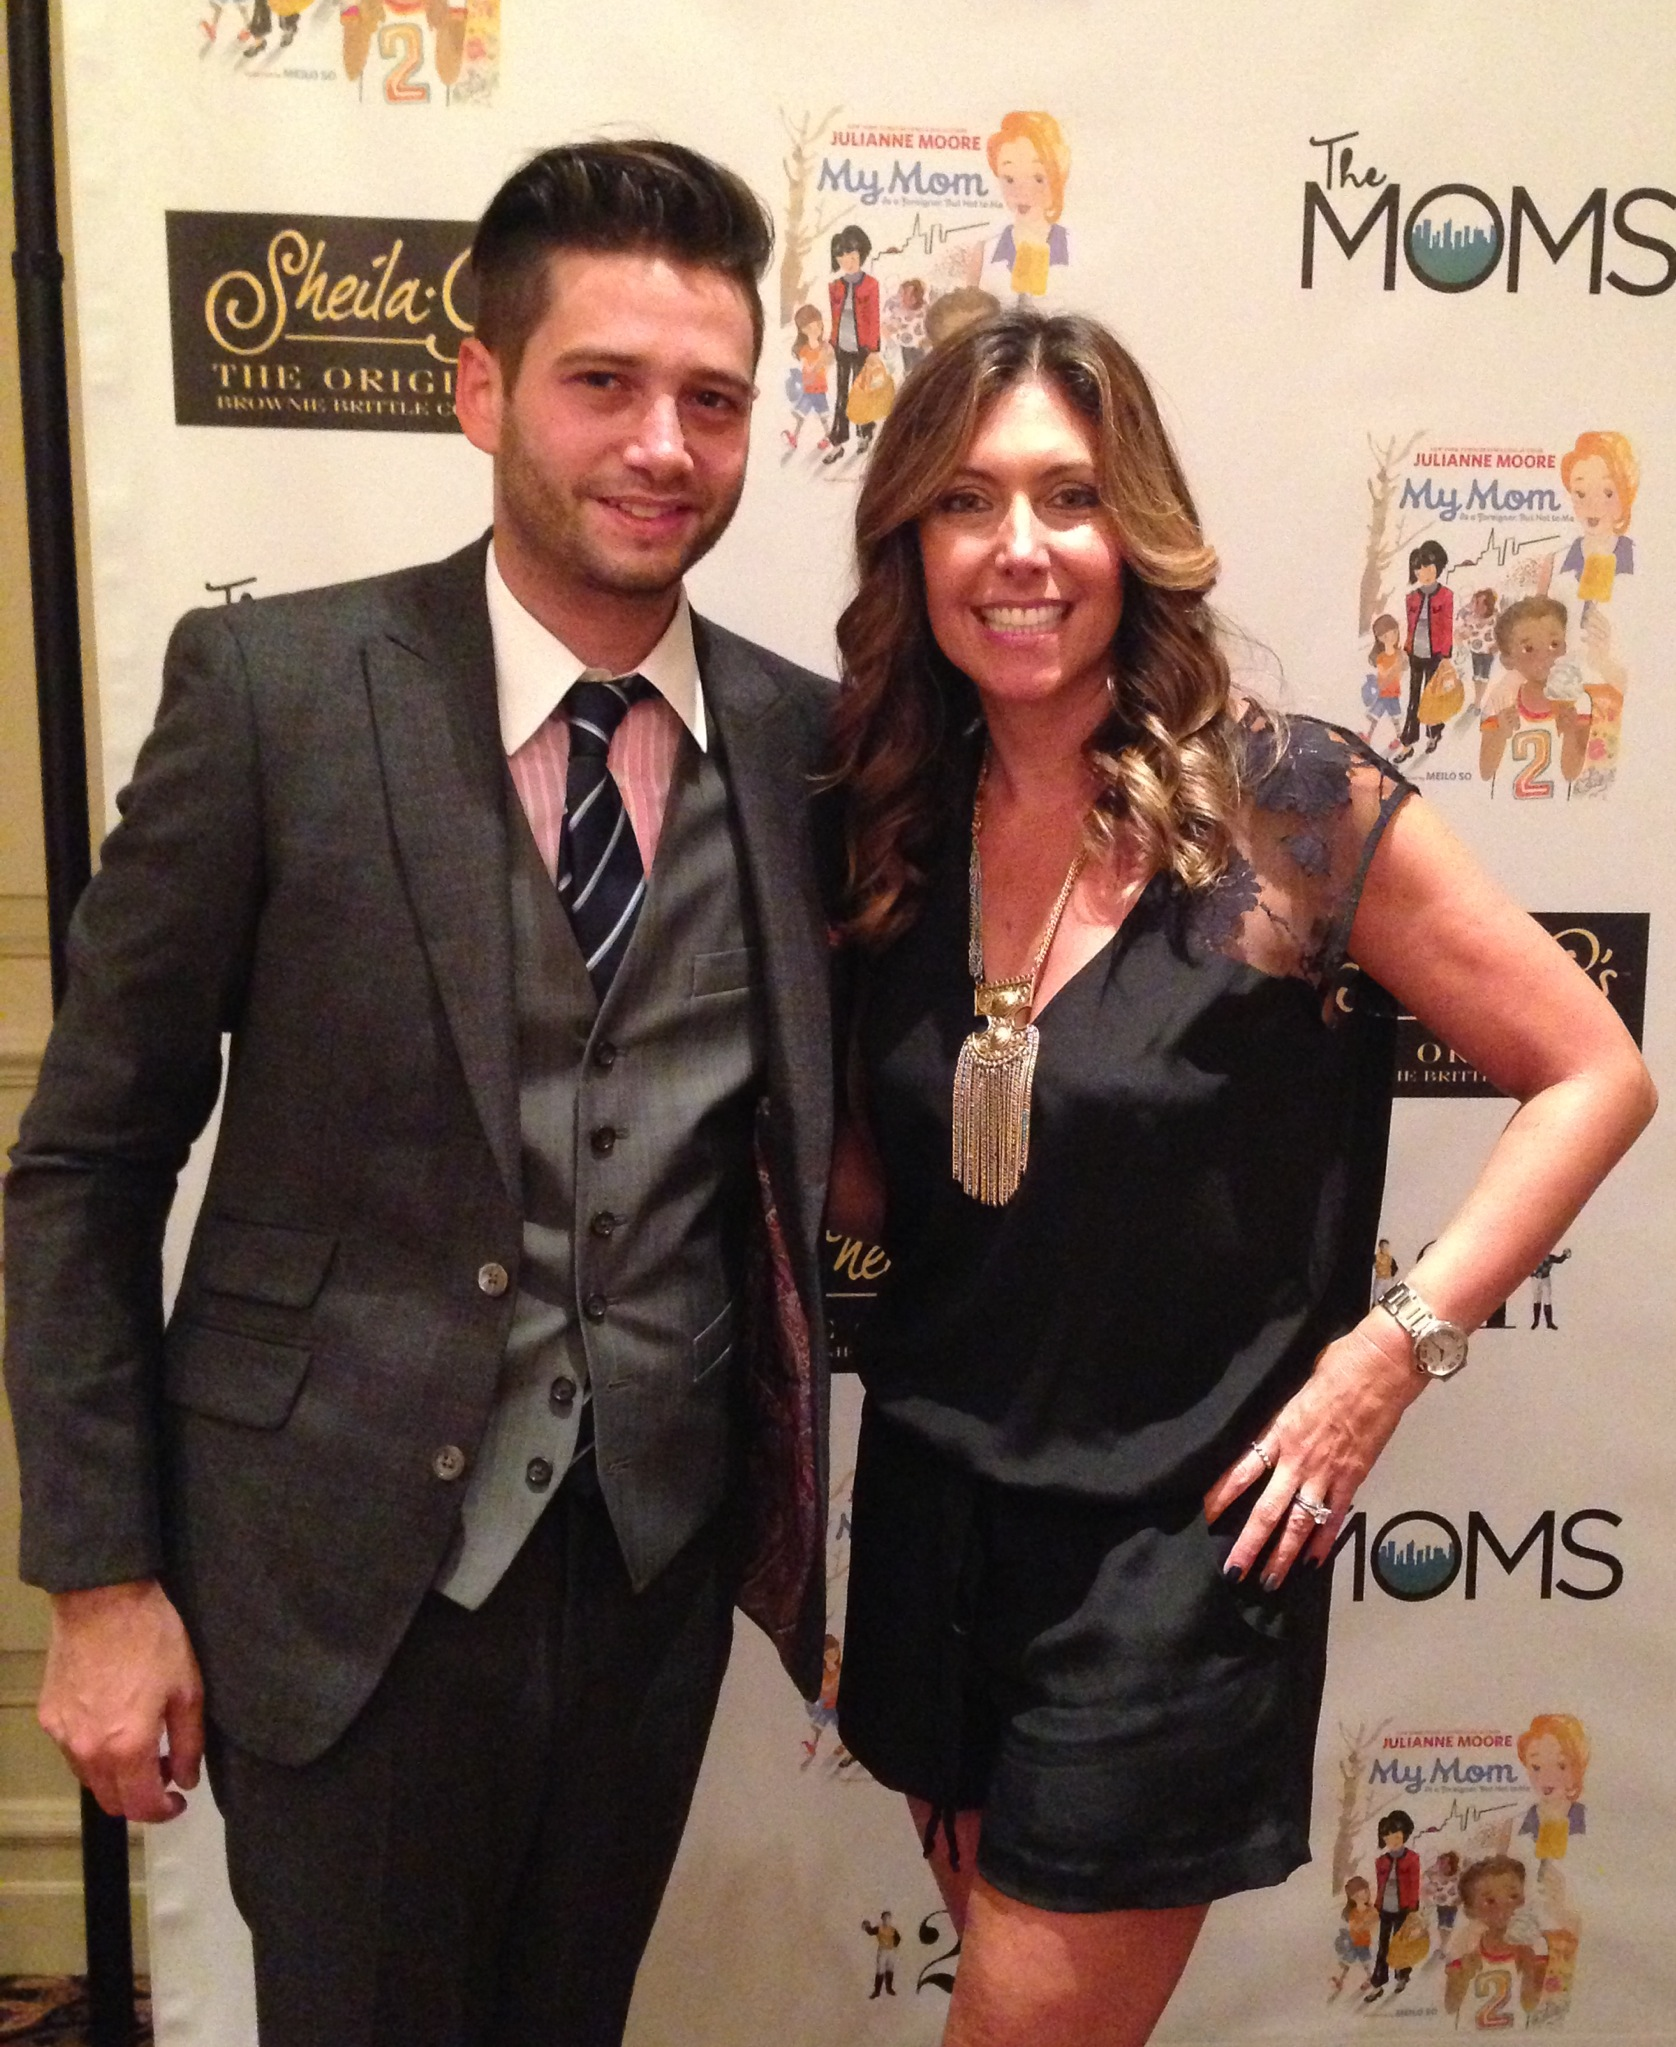 With my good friend and Bravolebrity Josh Flagg (Million Dollar Listing LA) who joined me for the event.